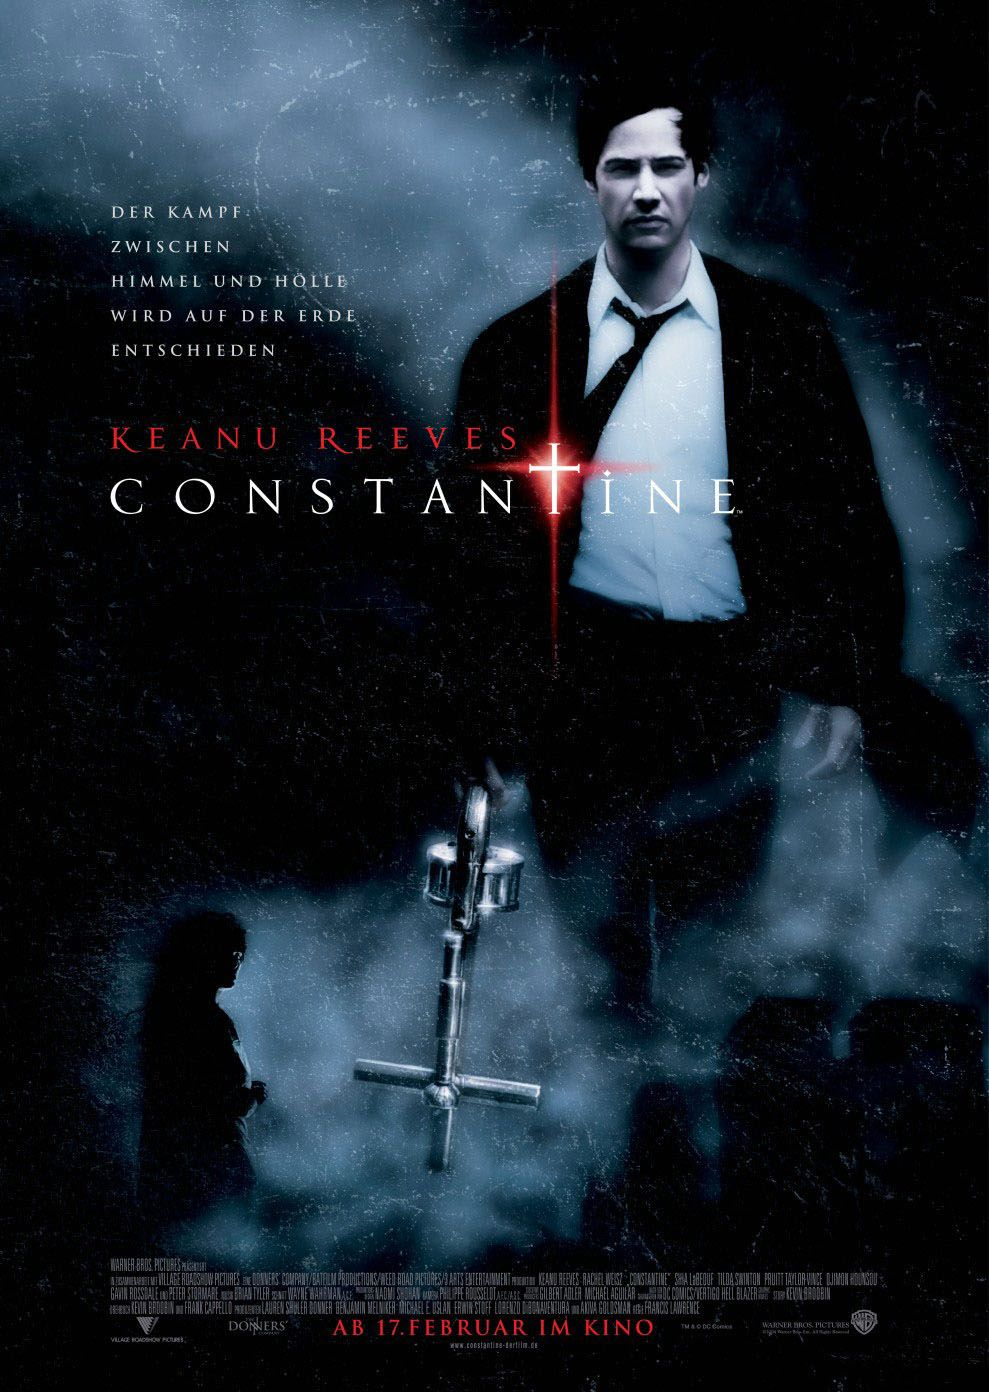 Constantine (2005) Constantine tells the story of irreverent ...